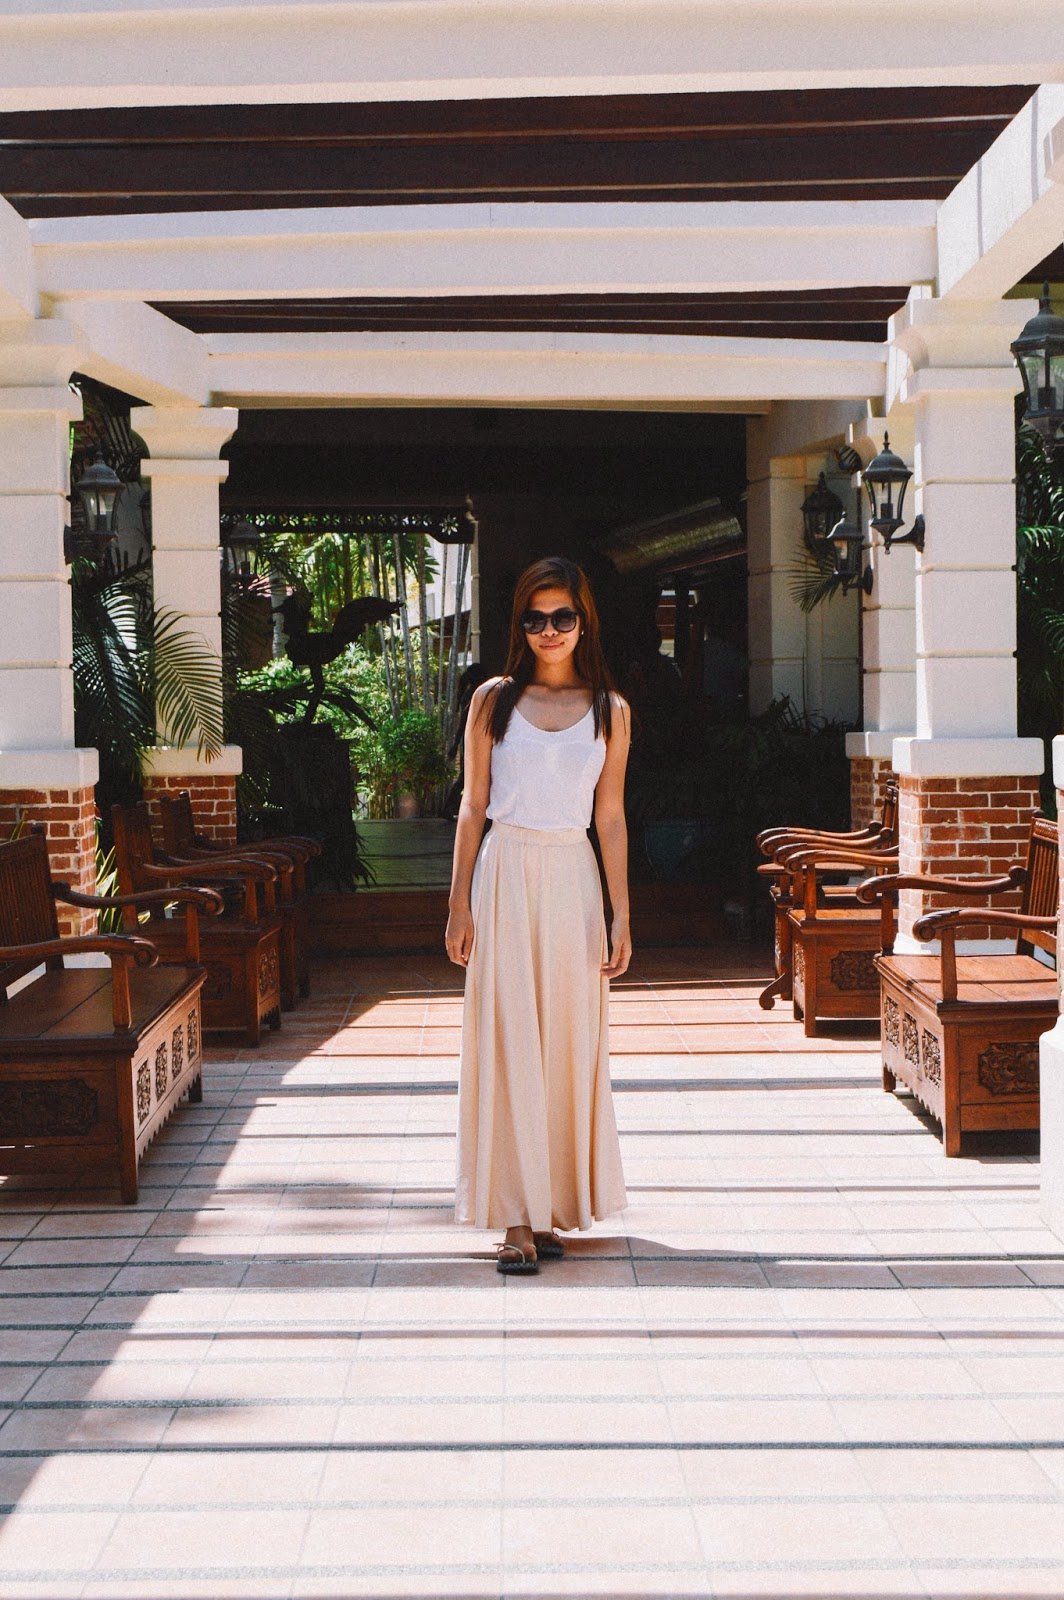 summer ootd, summer breeze, chill summer, summer, chill, Costabella Beach Resort, How to edit instagram photos, fashion blogger, style blogger, cebu blogger, cebu style blogger, blogger, filipina blogger, cebuana blogger, nested thoughts, katherine cutar, katherine anne cutar, katherineanika, katherine annika, ootd, ootd pilipinas, summer 2015, philippines summer 2015, philippines summer, cebu summer, cebu summer 2015, costabella cebu,